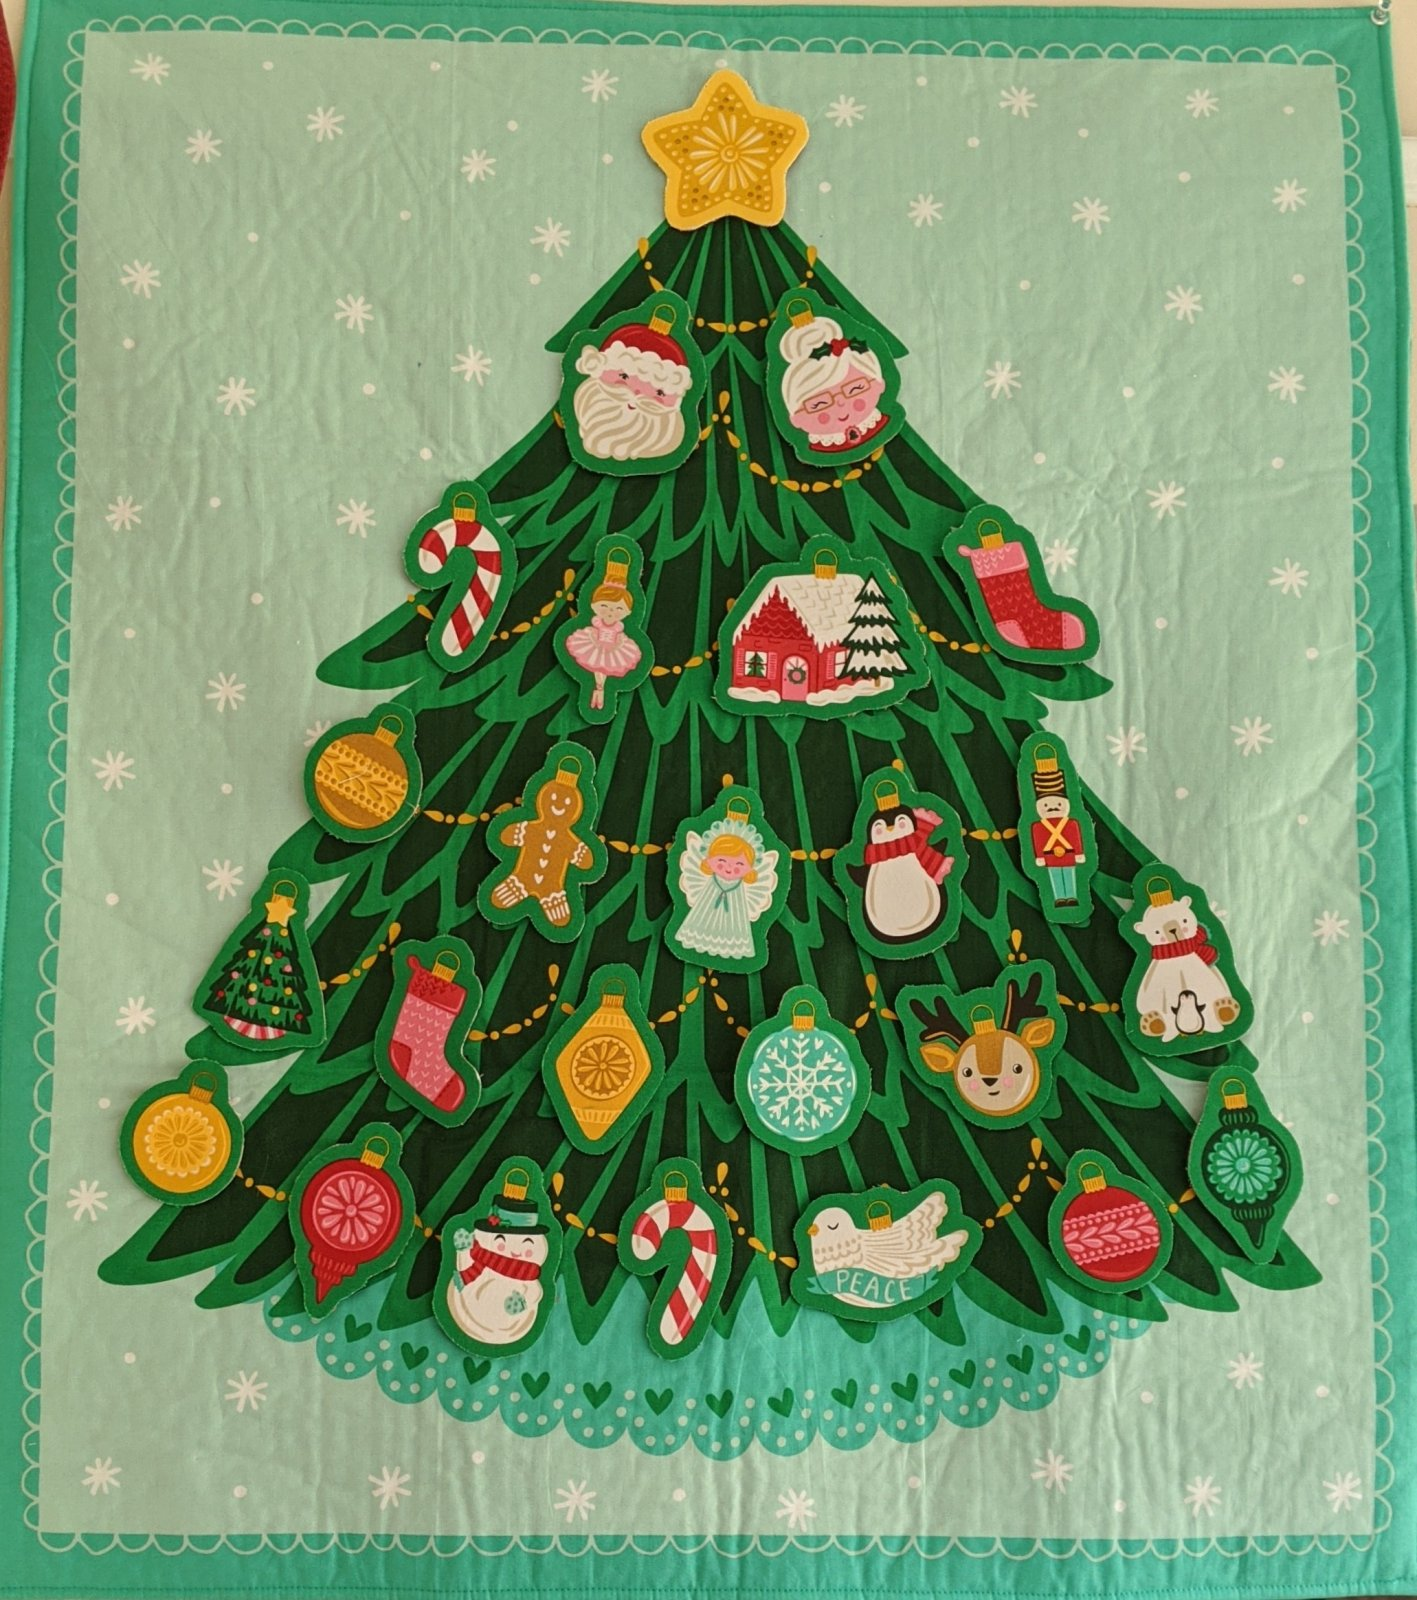 Deck the Halls XMas Tree Kit